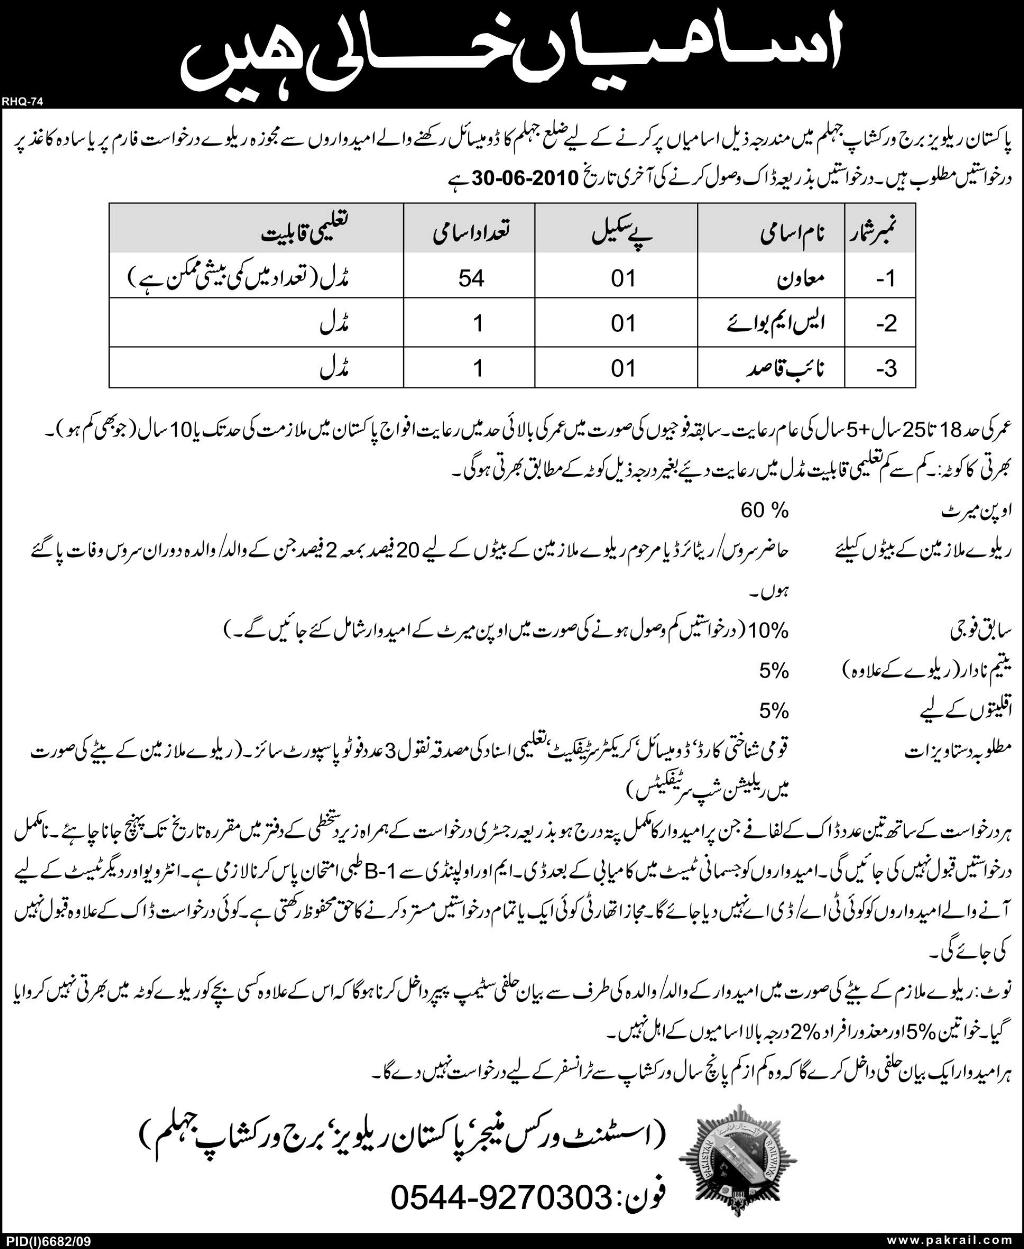 Application Required for Railway Department